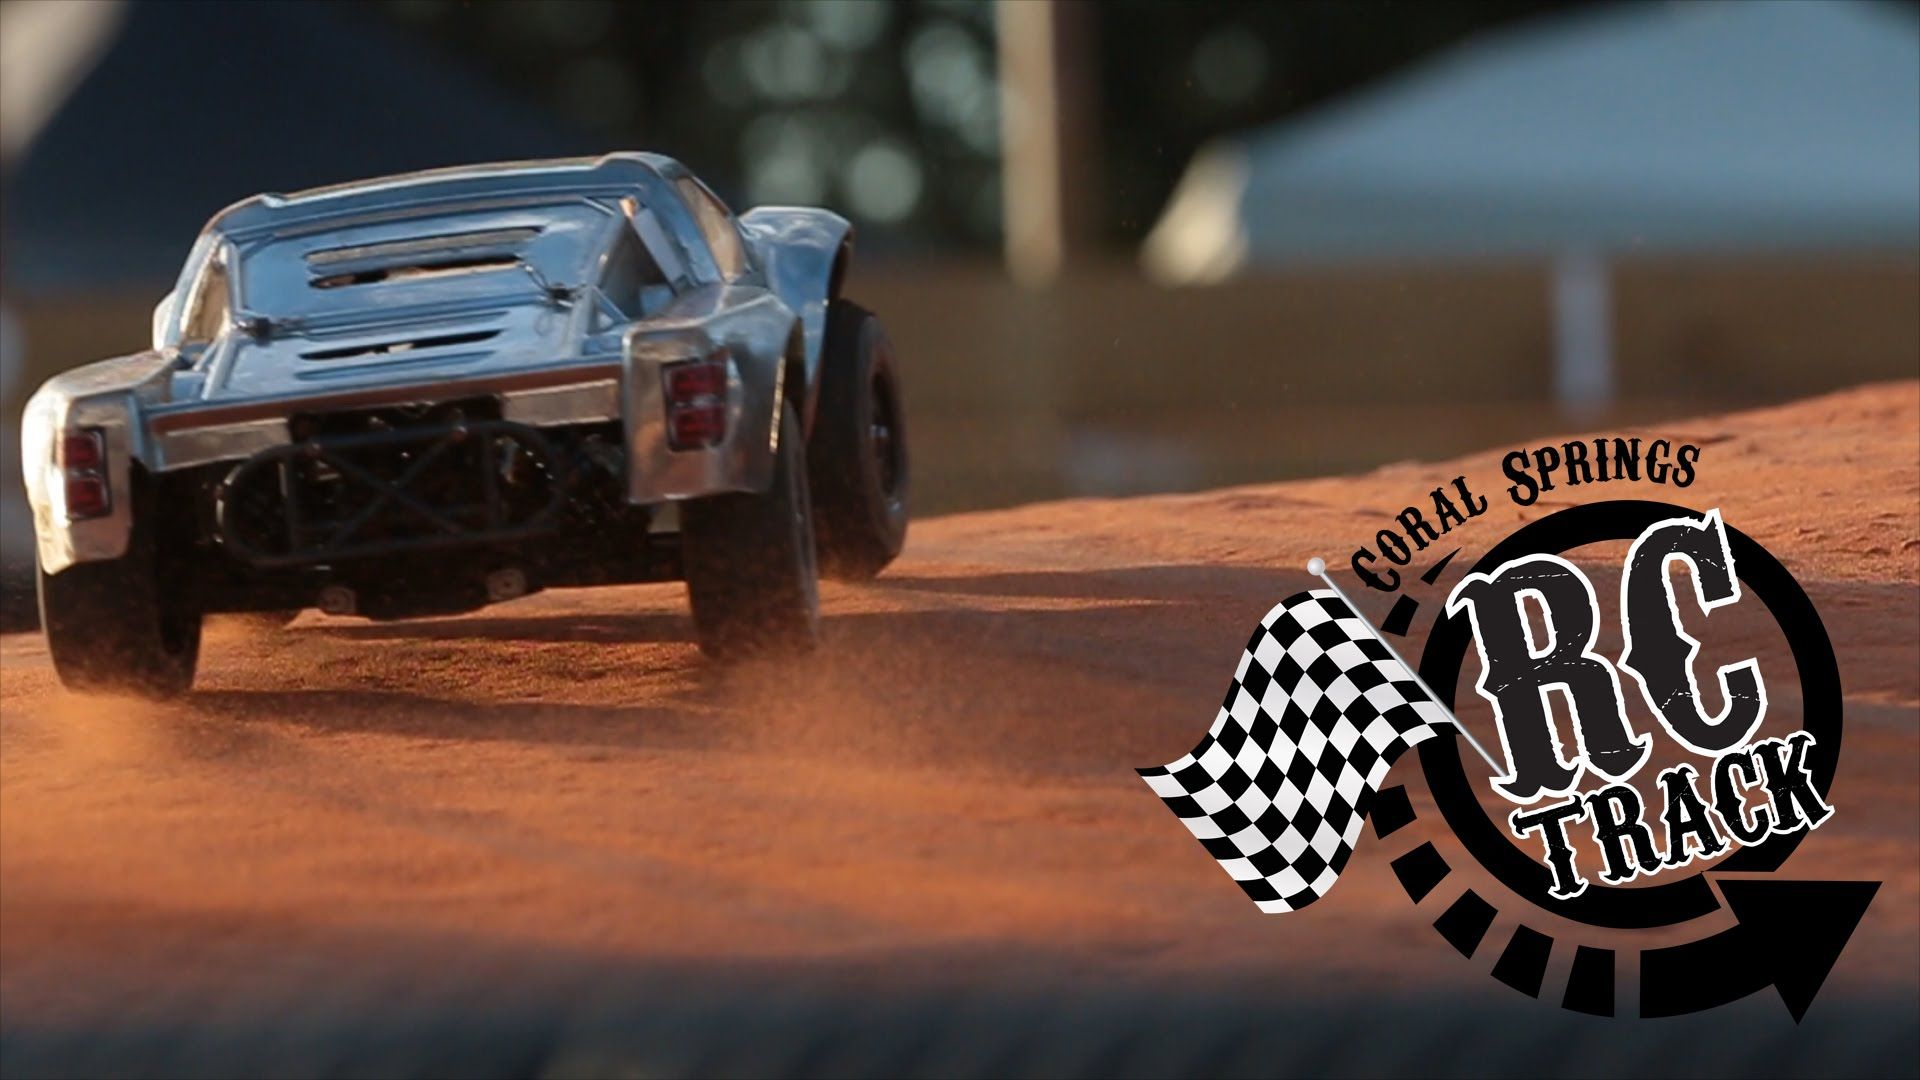 South Florida Off Road Championship Series Race 4 December